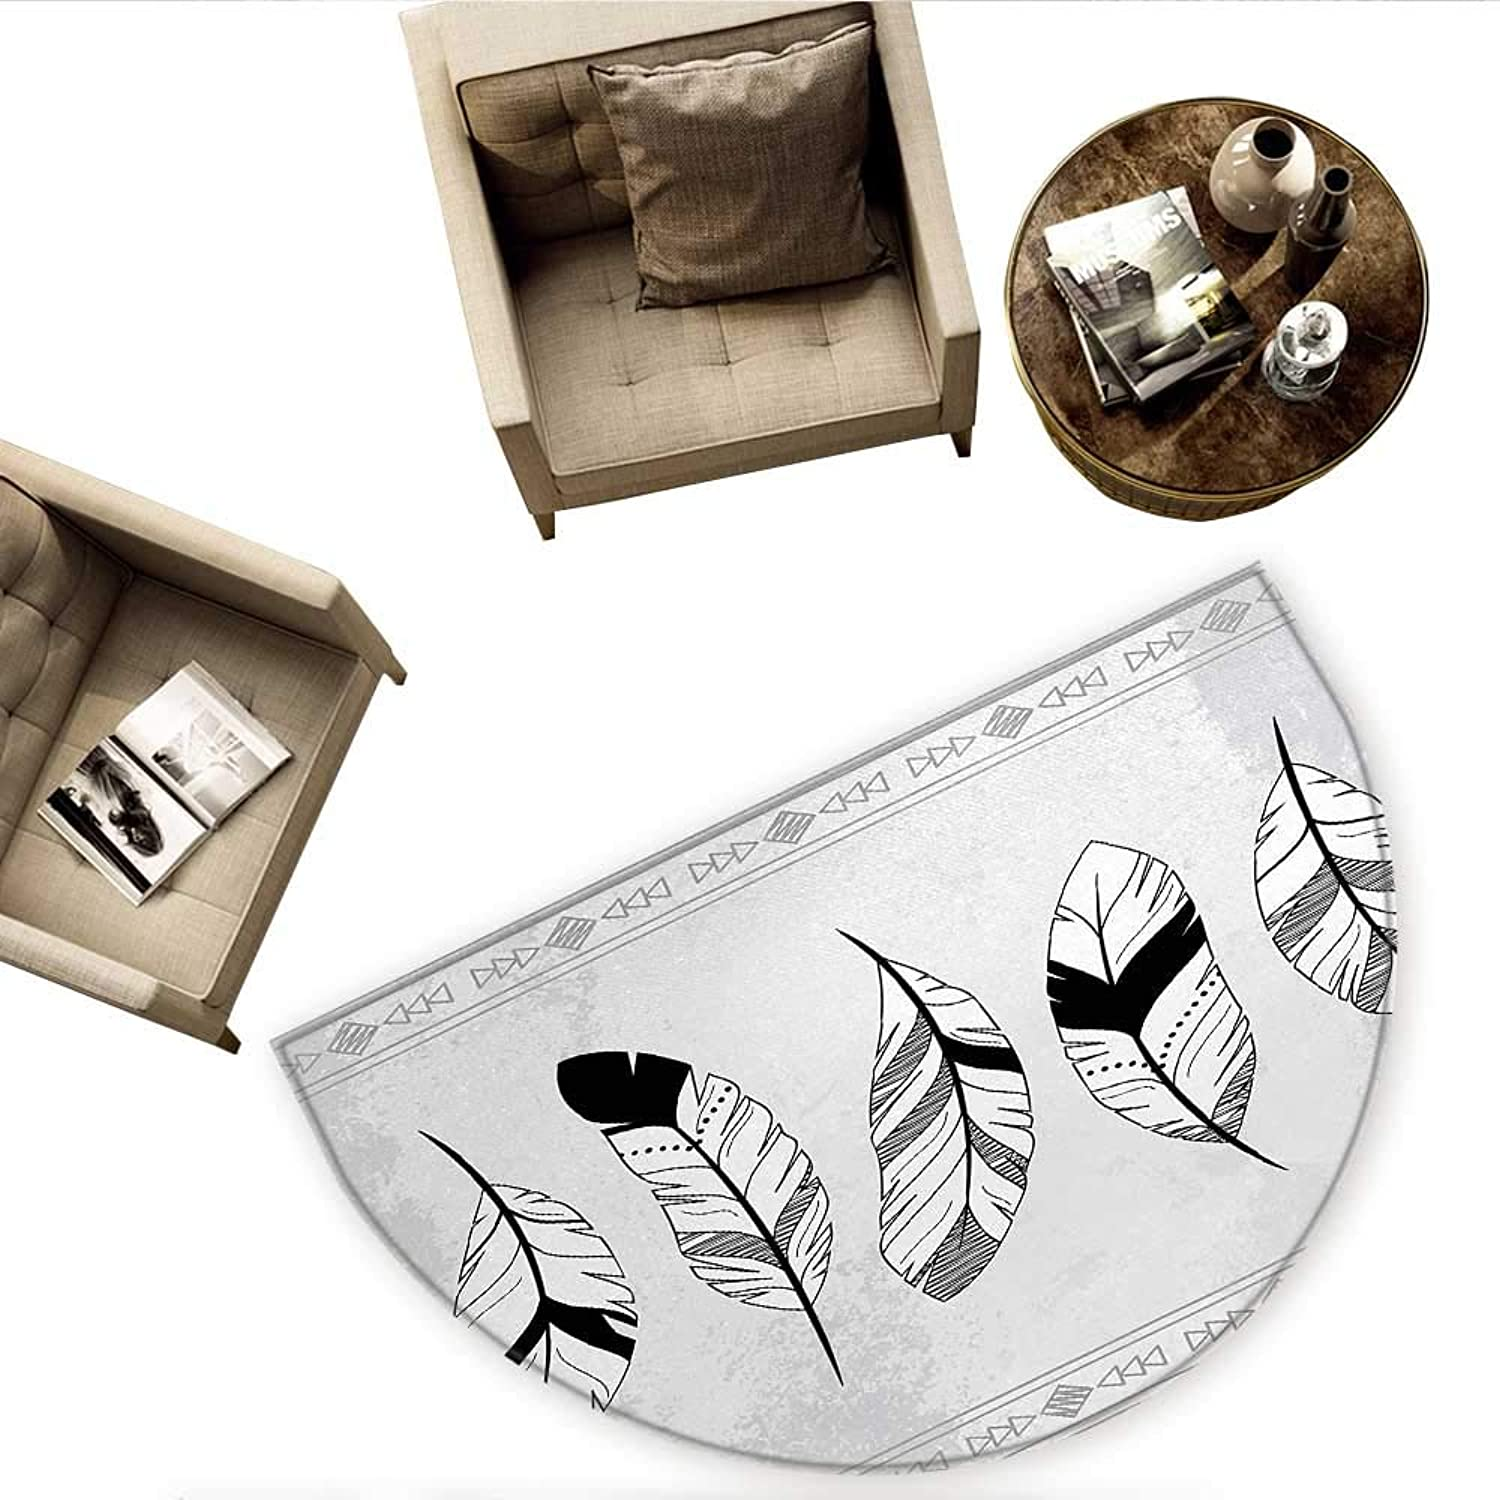 Feather Semicircle Doormat Stylized Doodle Borders with Triangle Motifs Artistic Bohemian Western Halfmoon doormats H 59  xD 88.6  Black White Pale Grey